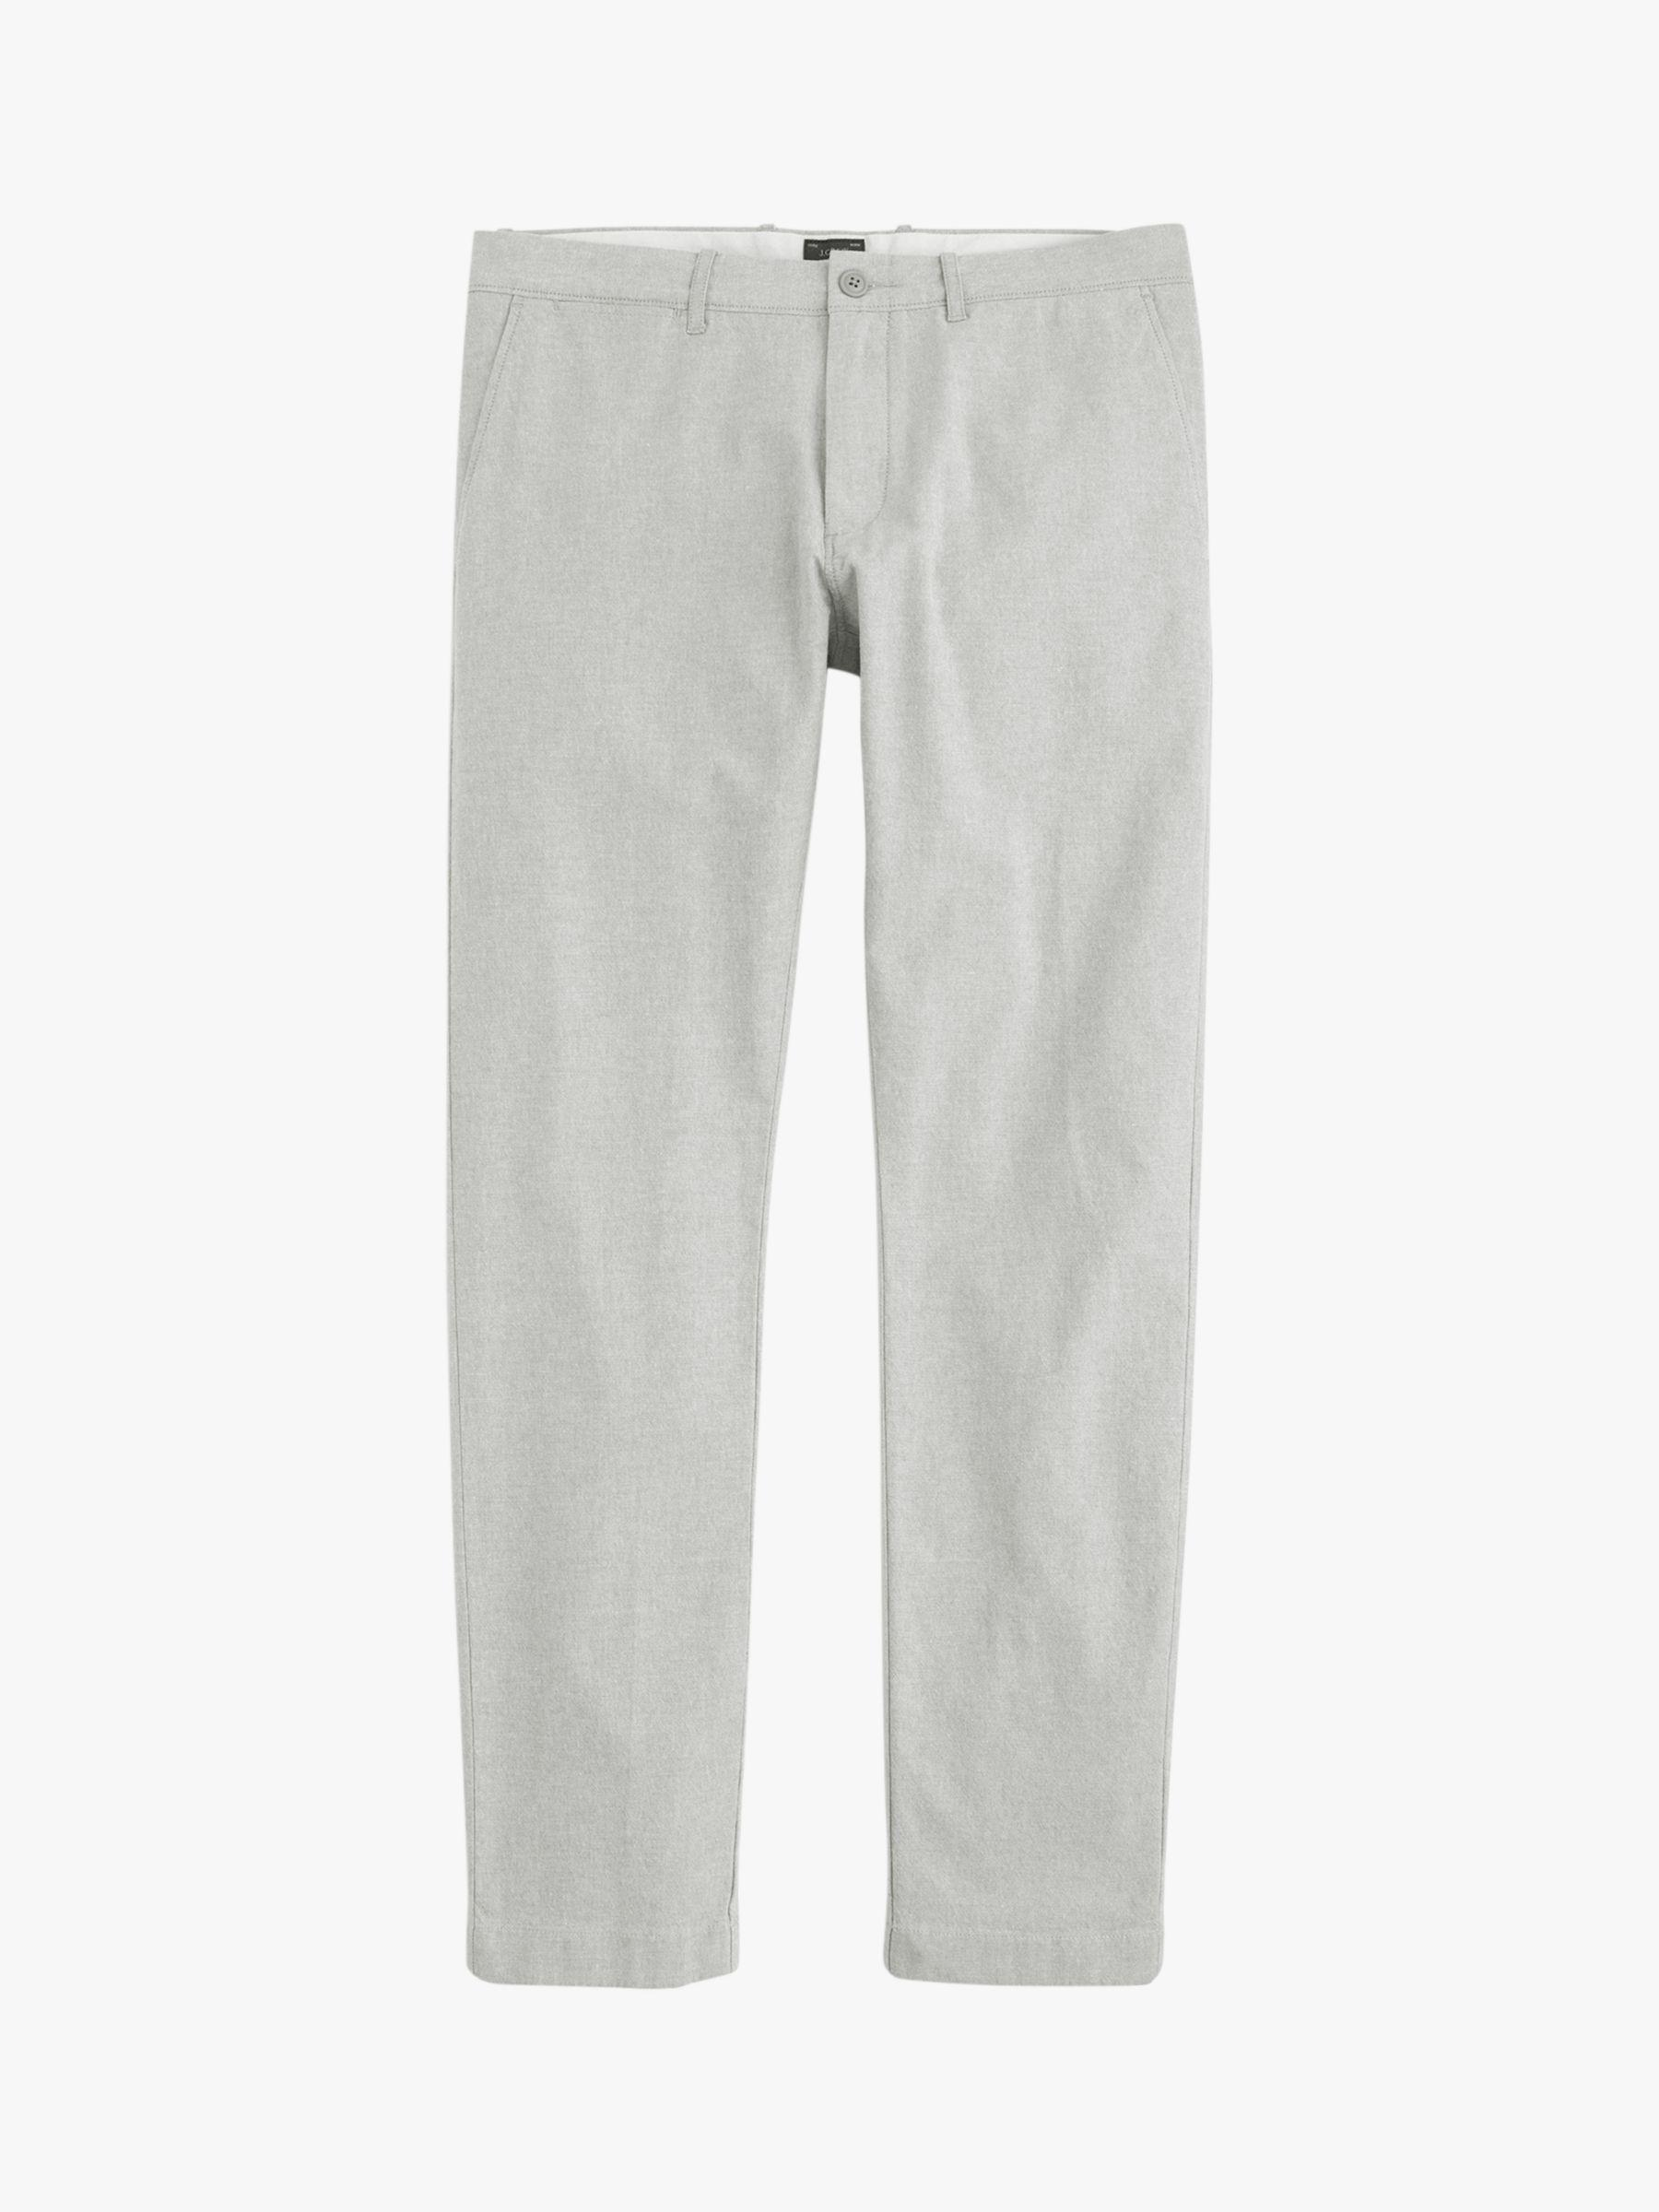 J.Crew Denim Slim Fit Stretch Chambray Chinos in Olive Grey (Grey) for Men